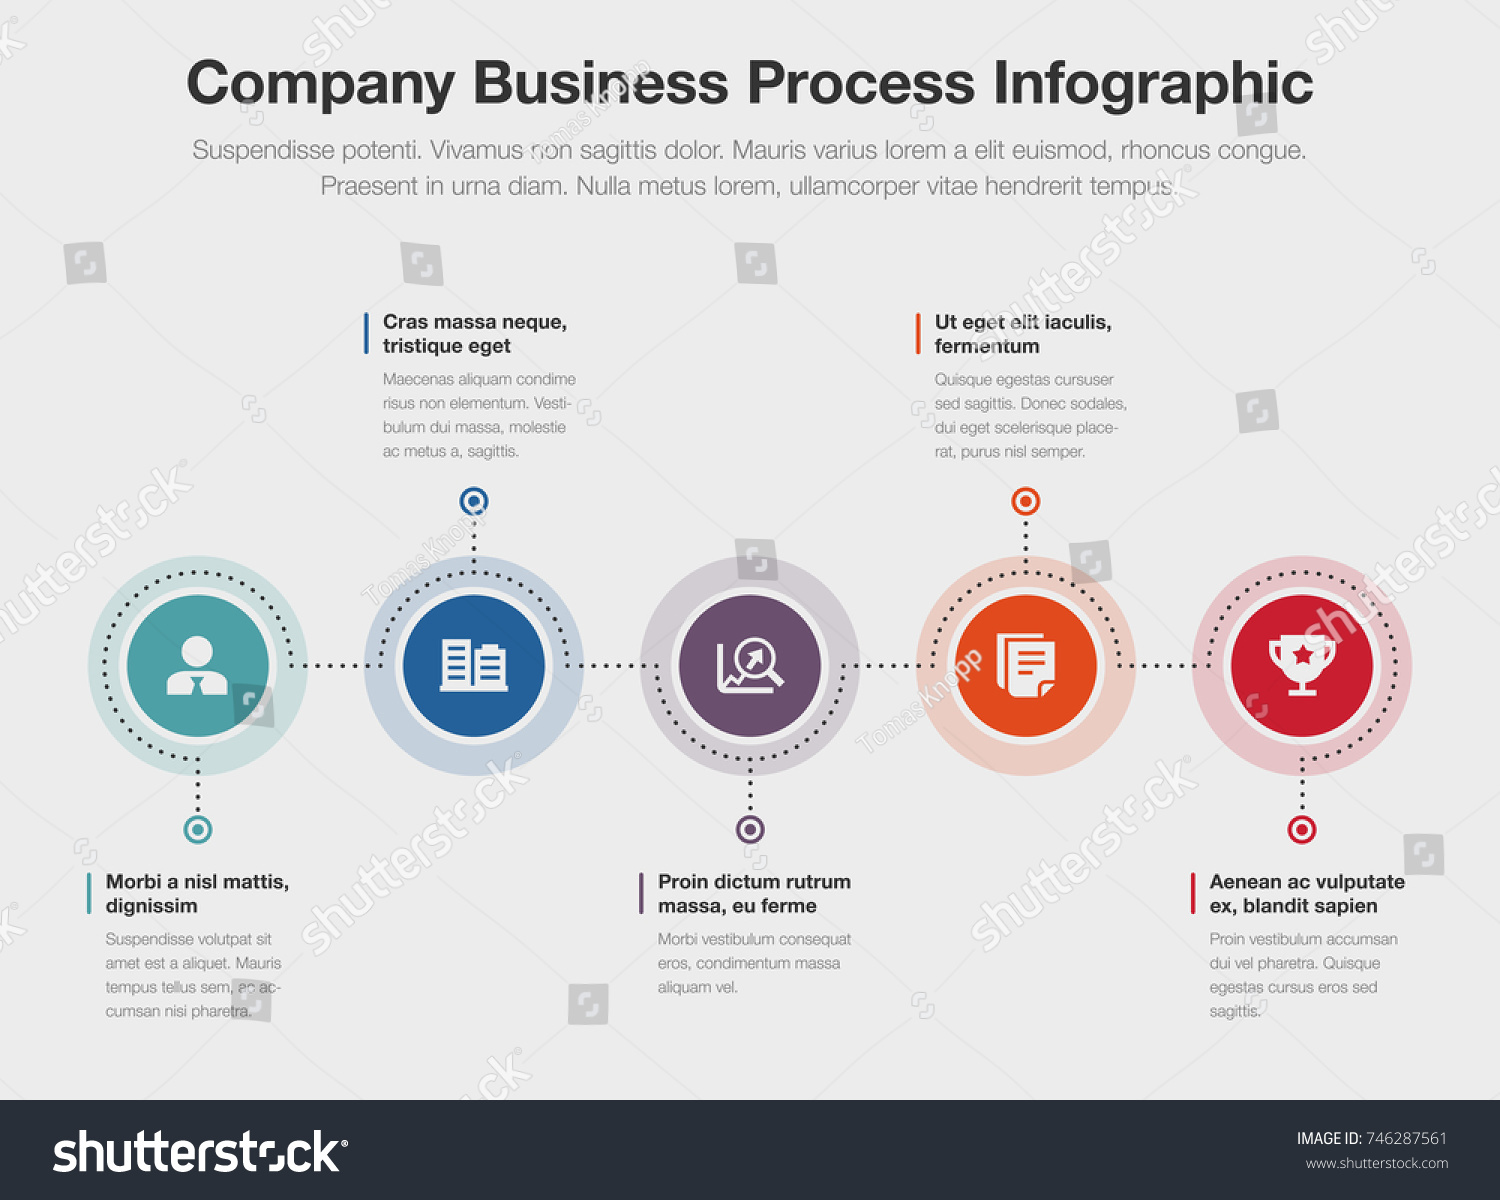 vector infographic company business process template isolated on light background